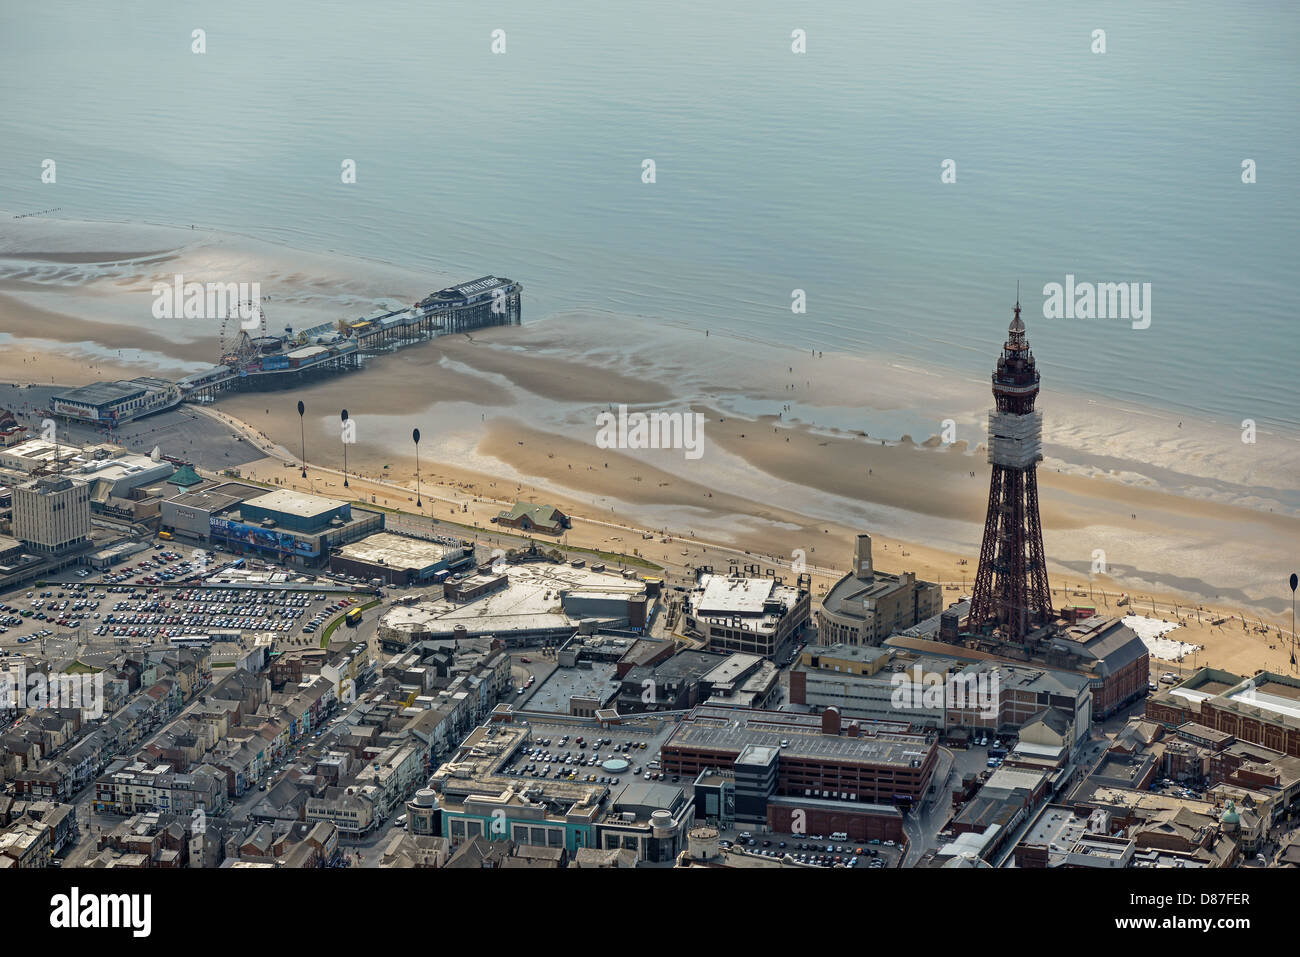 Aerial photograph of Blackpool Tower and Central Pier - Stock Image